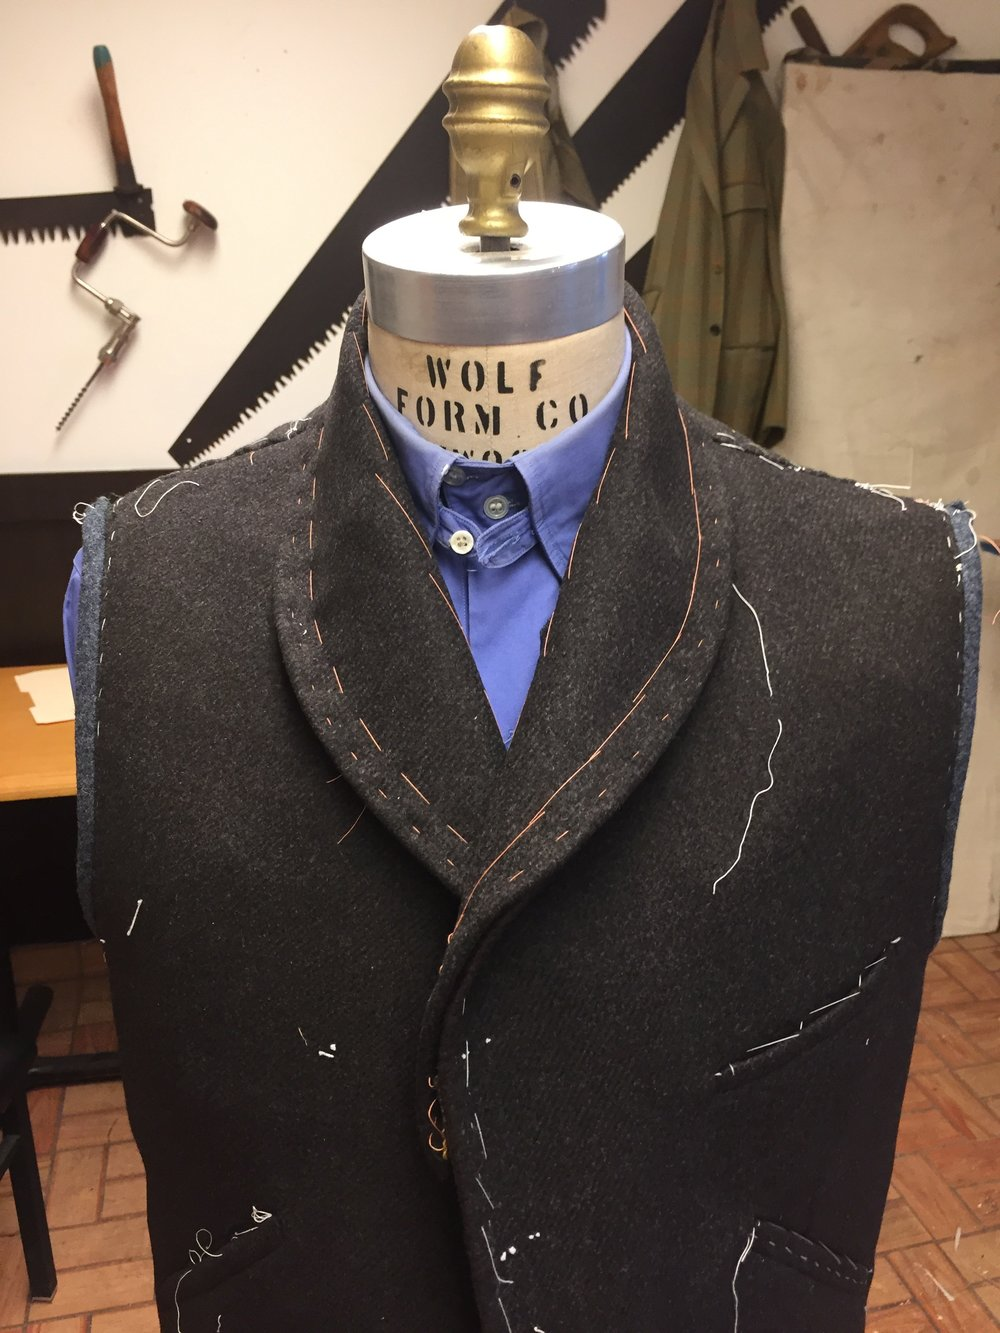 This vest must be made from the coat pattern. The collar will not set like it should using a vest pattern. At least I could not figure it.